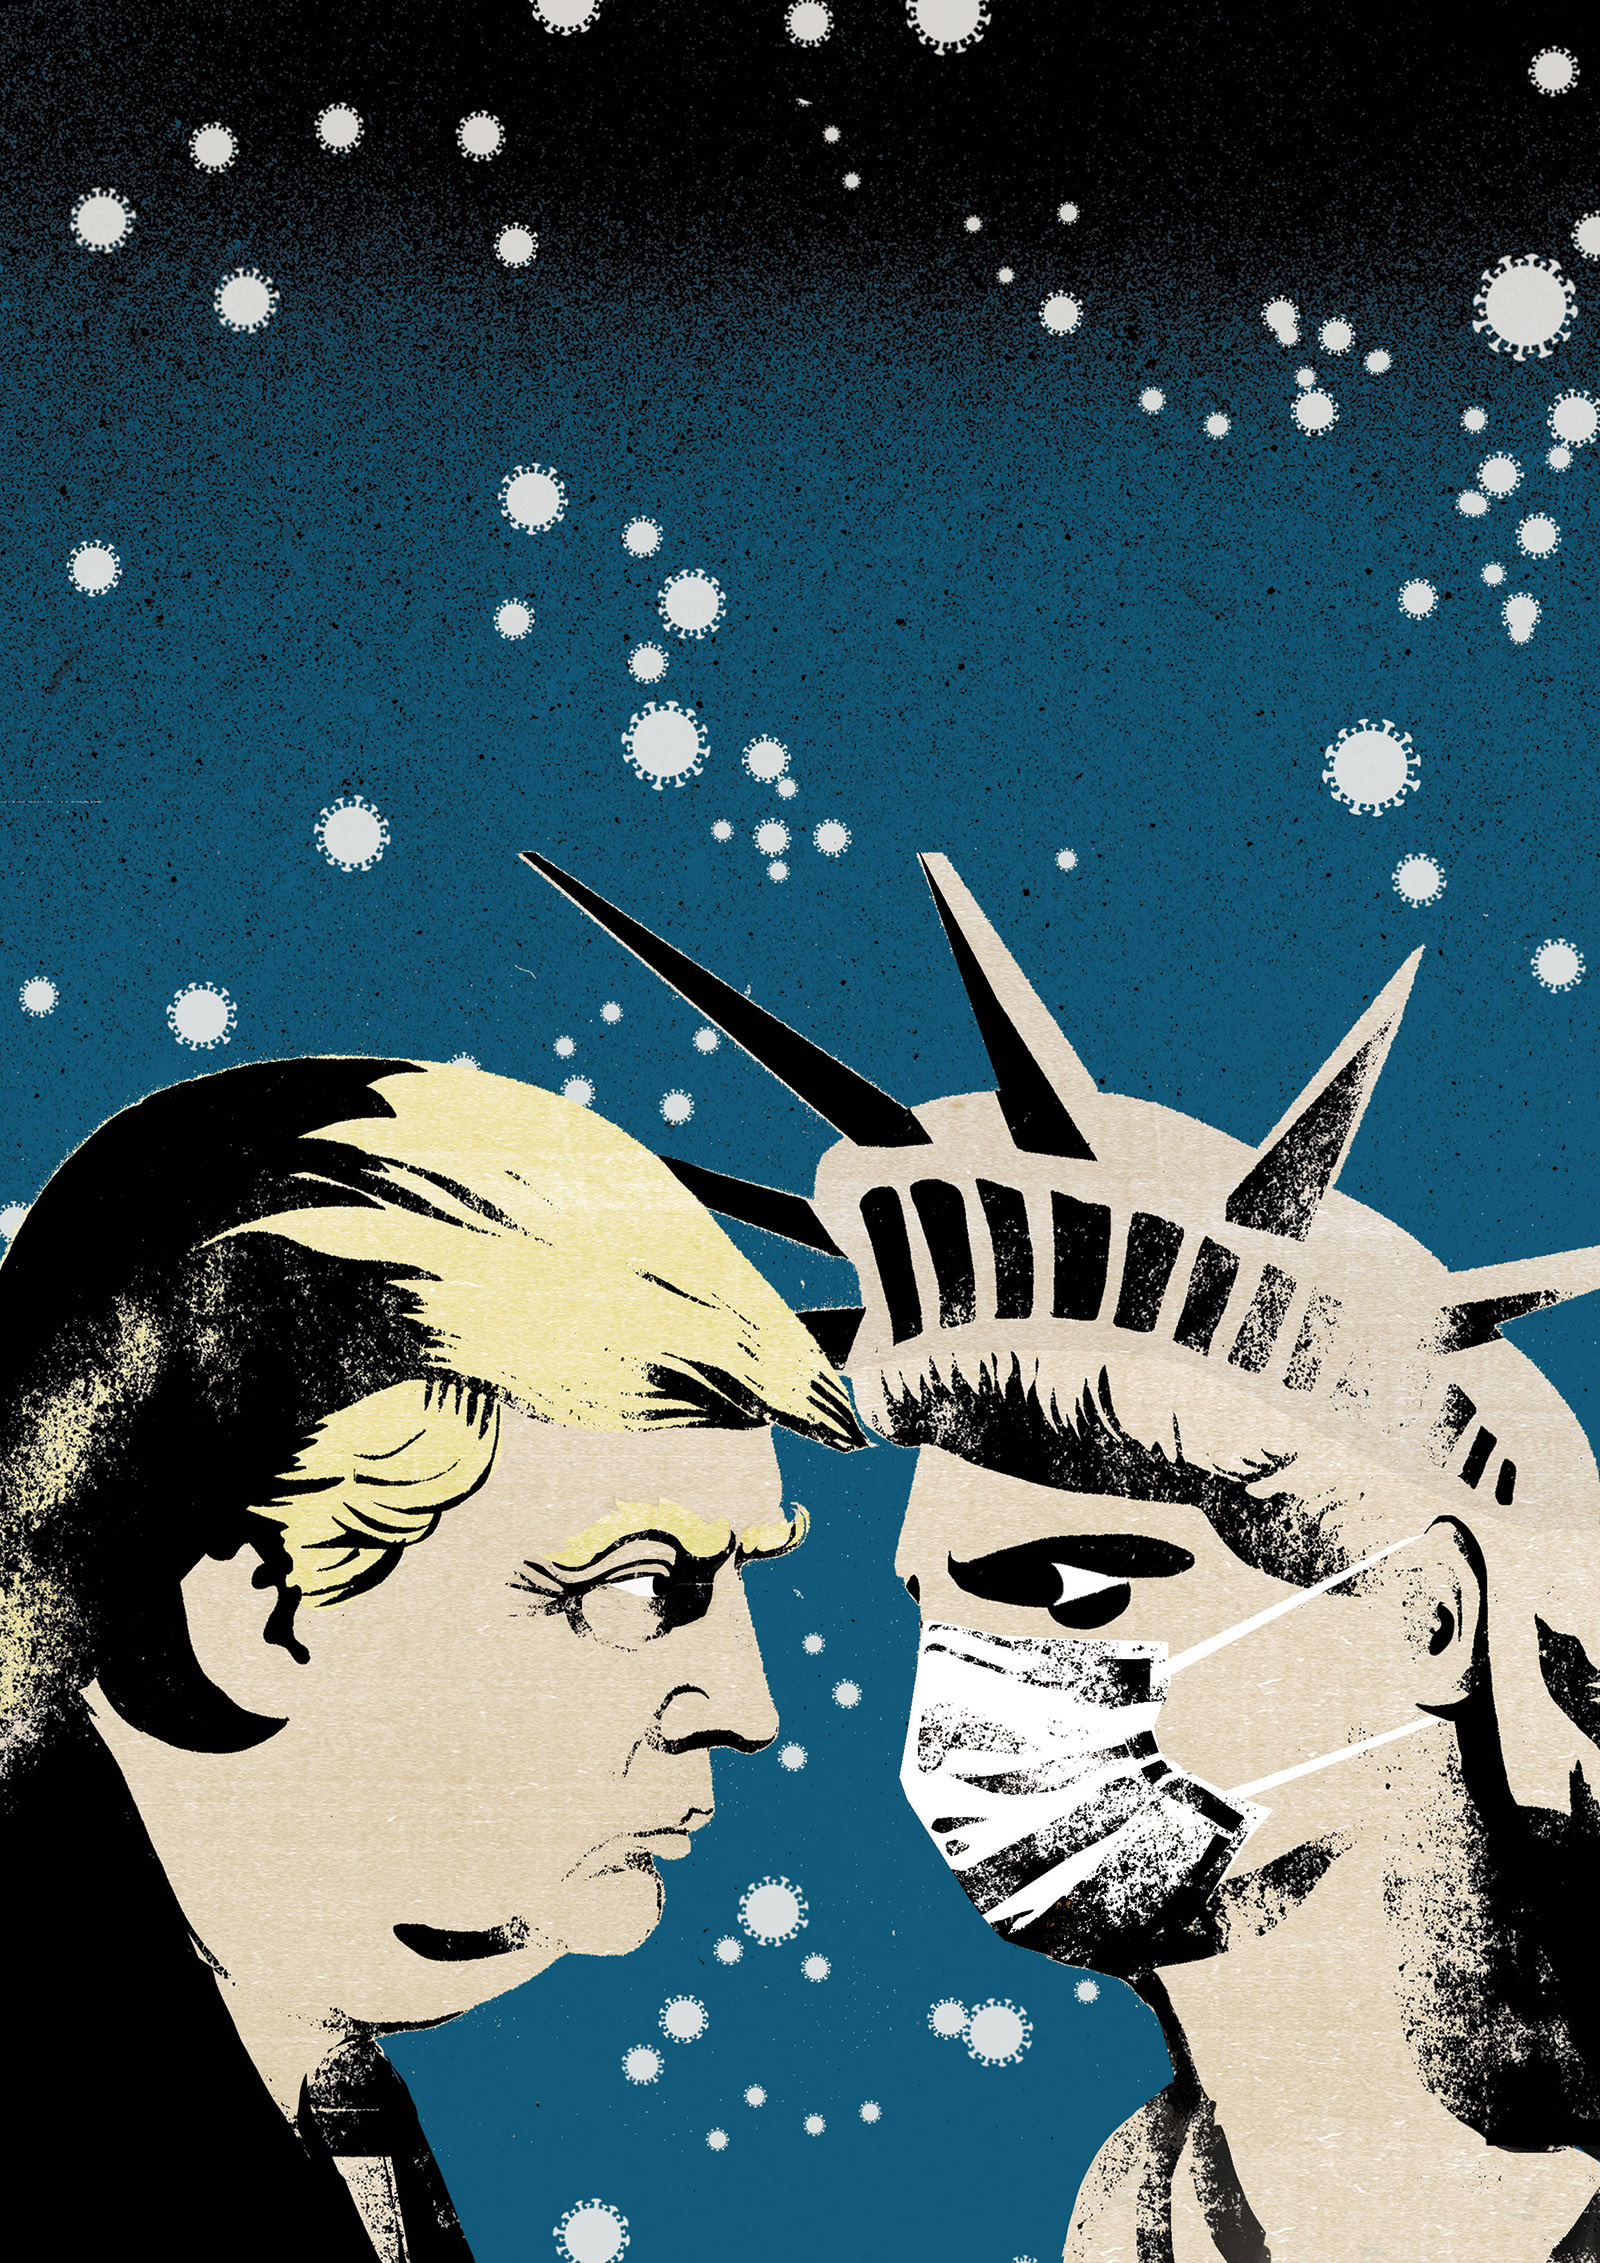 Illustration of Trump and the Statue of Liberty with a mask